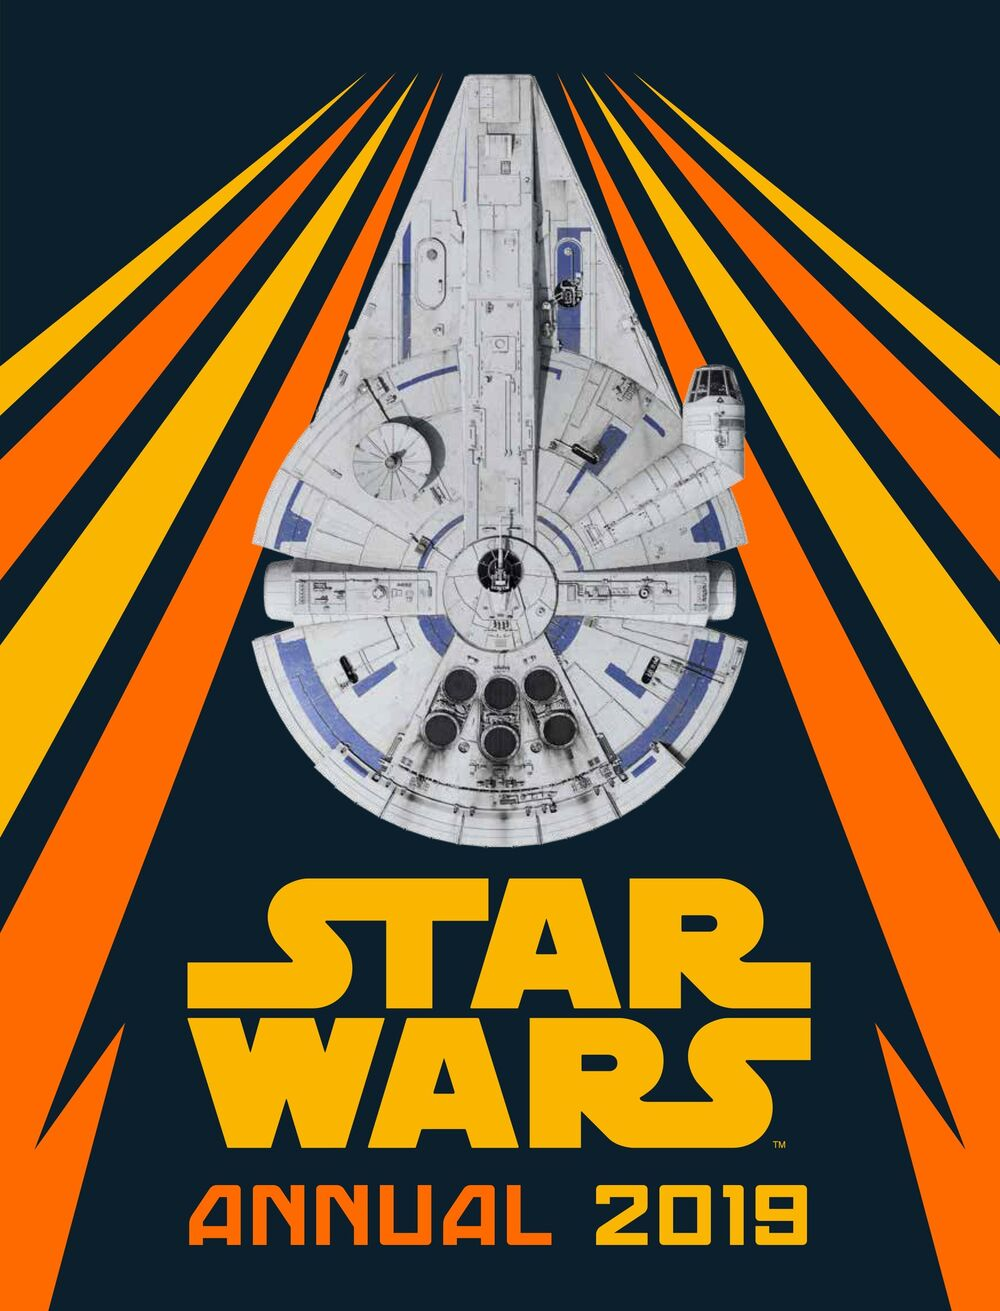 Star Wars Annual 2019